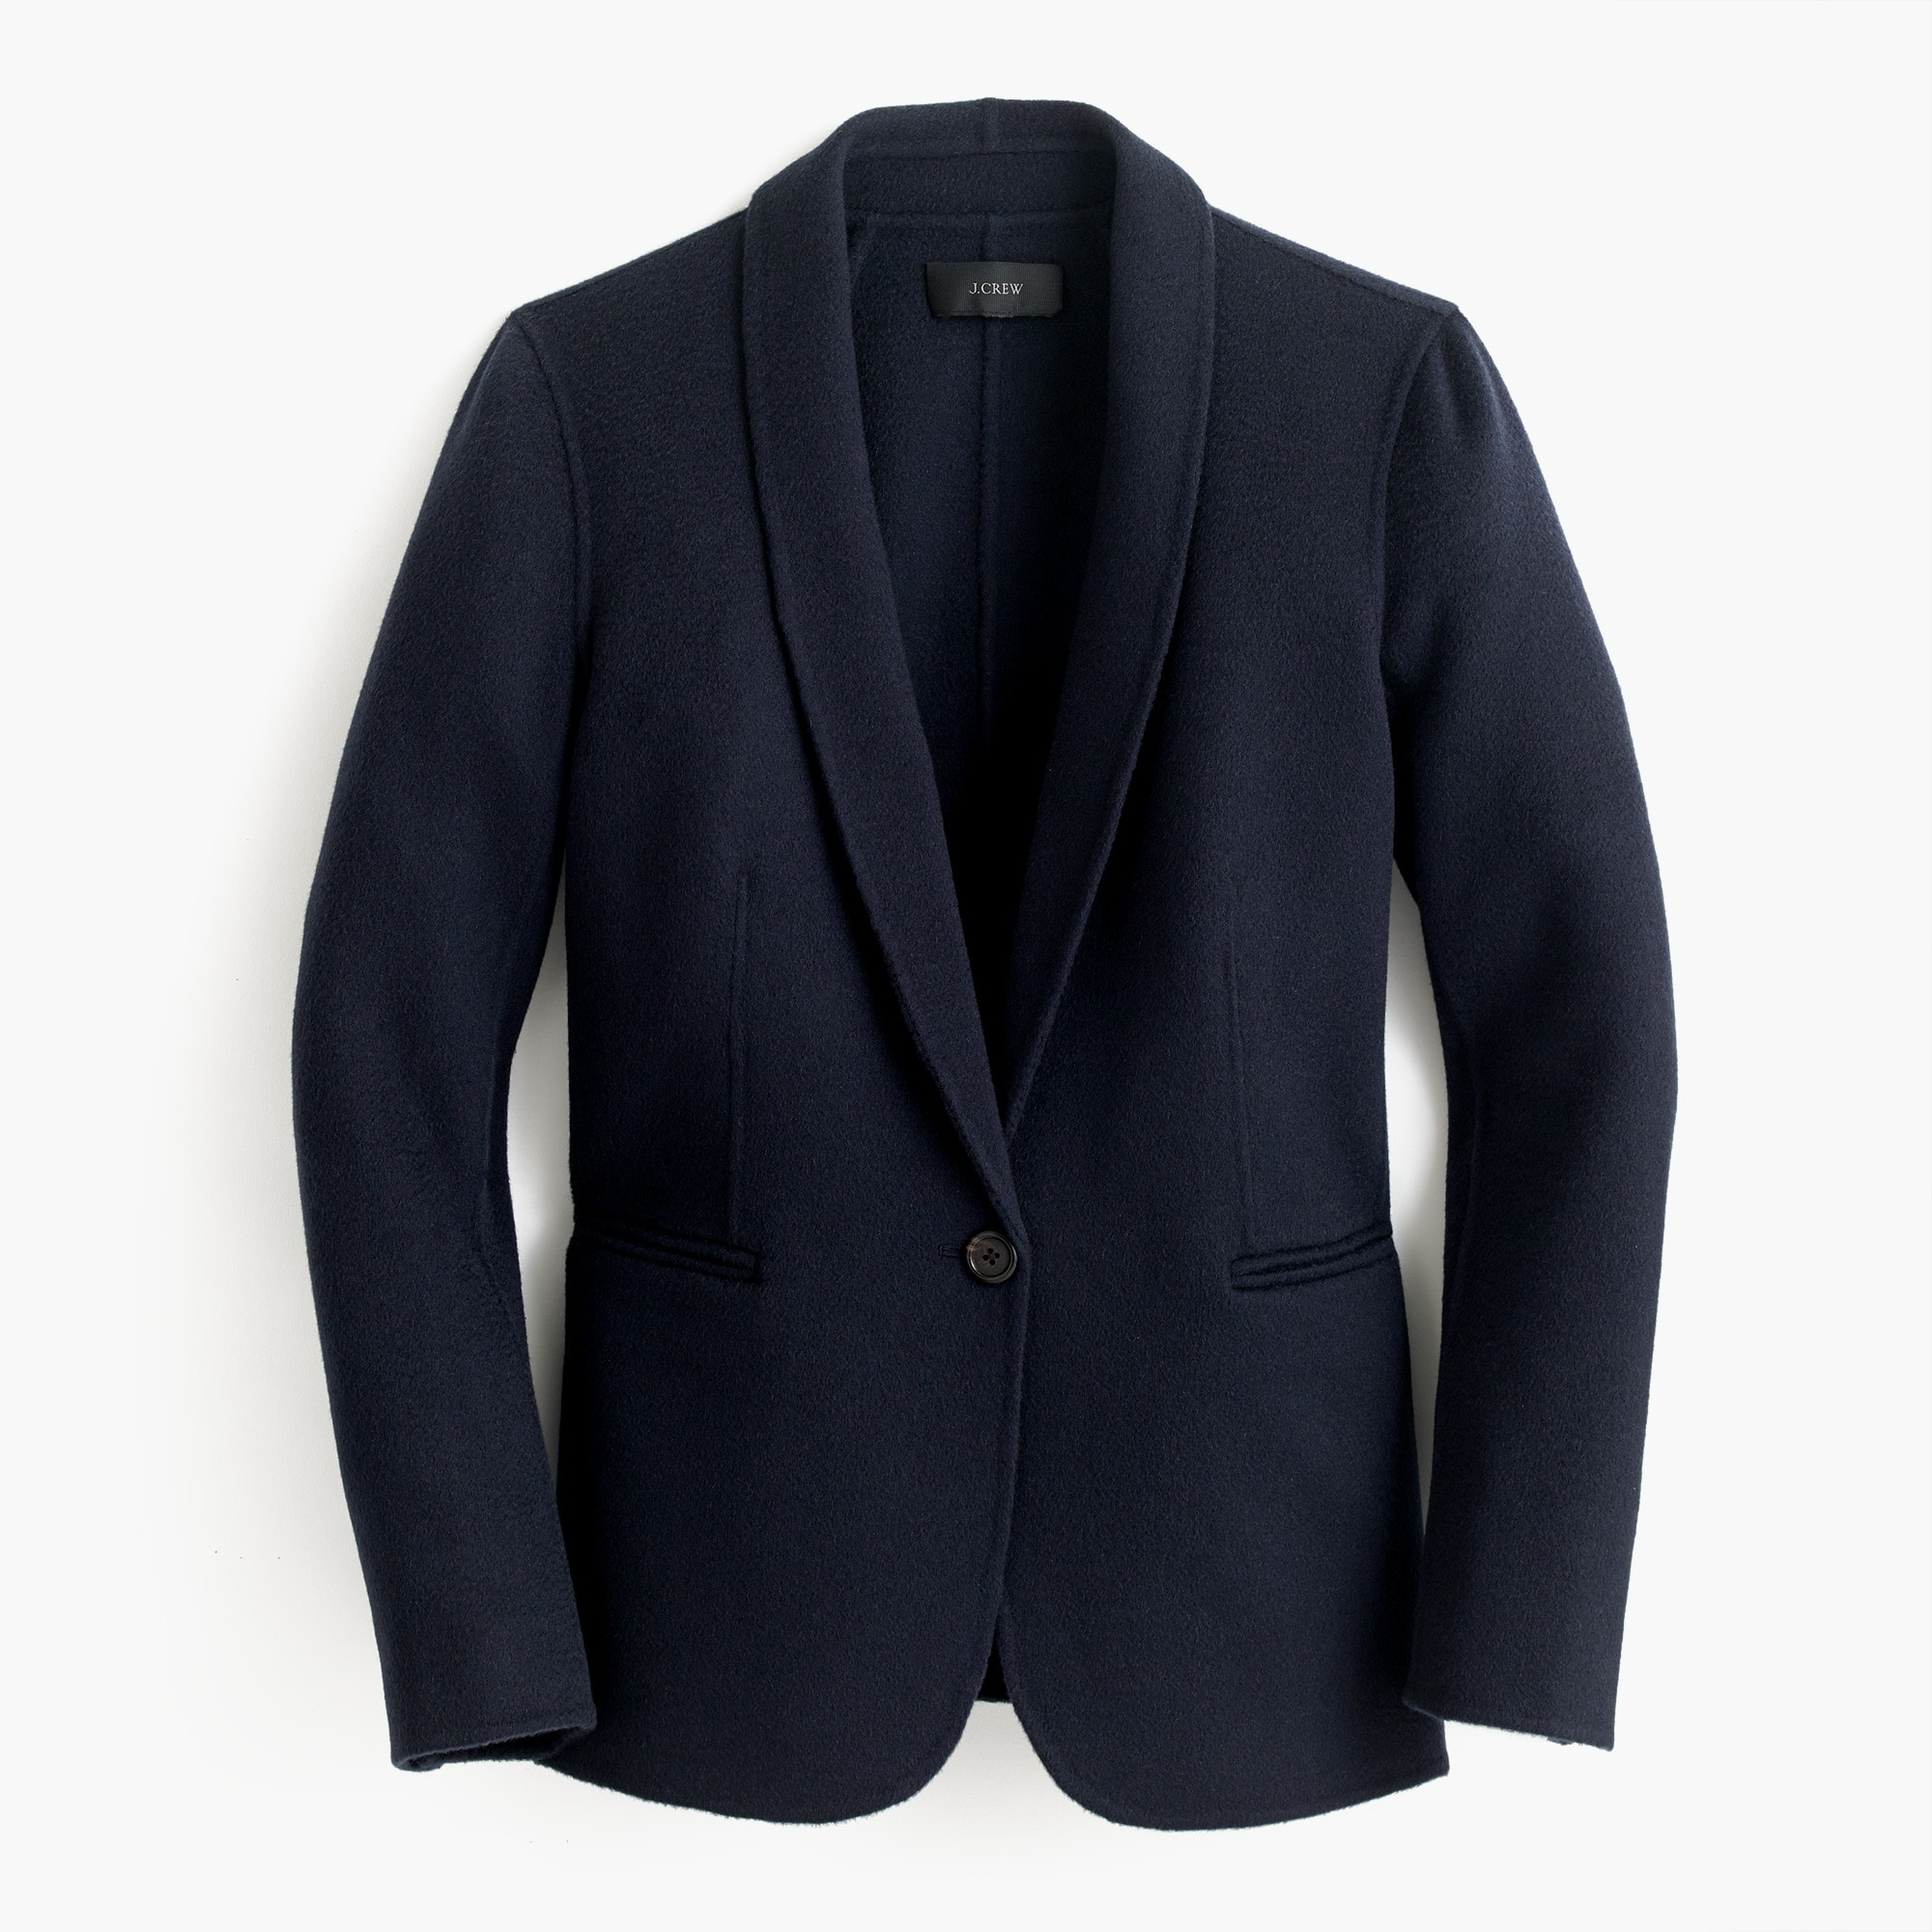 Collection Parke blazer in double-faced cashmere